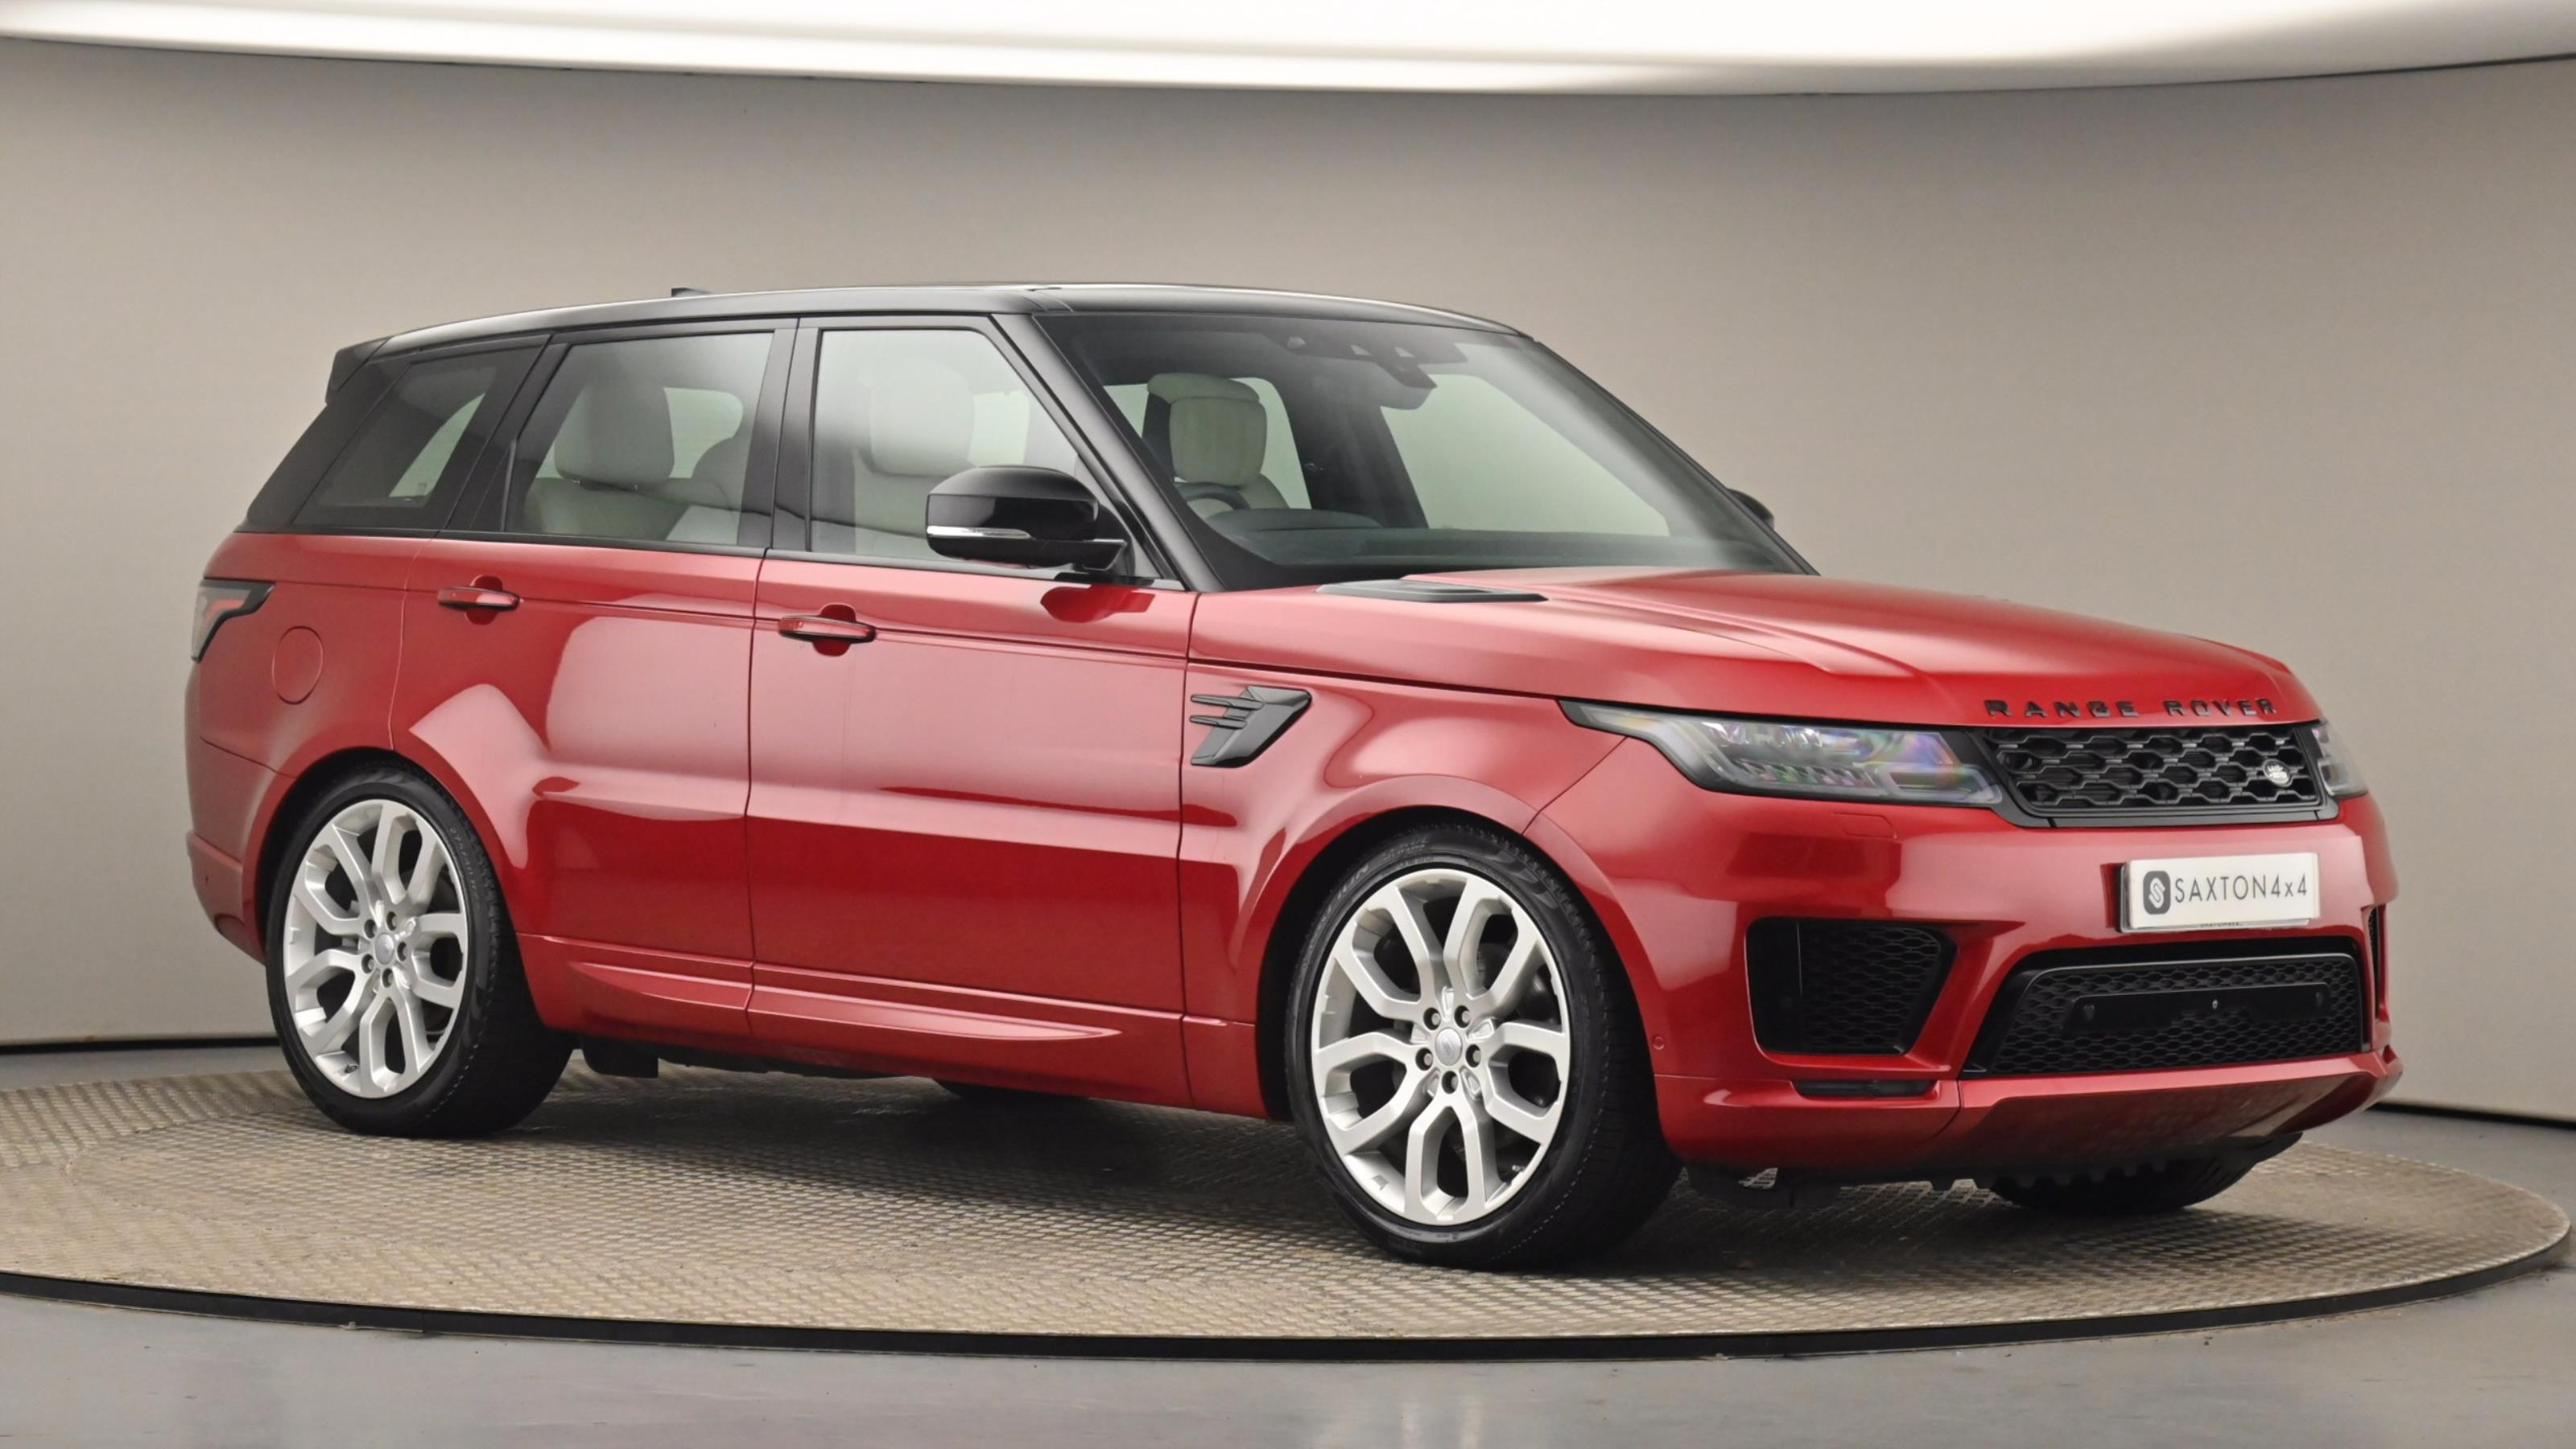 Used 2018 Land Rover RANGE ROVER SPORT 3.0 SDV6 Autobiography Dynamic 5dr Auto RED at Saxton4x4